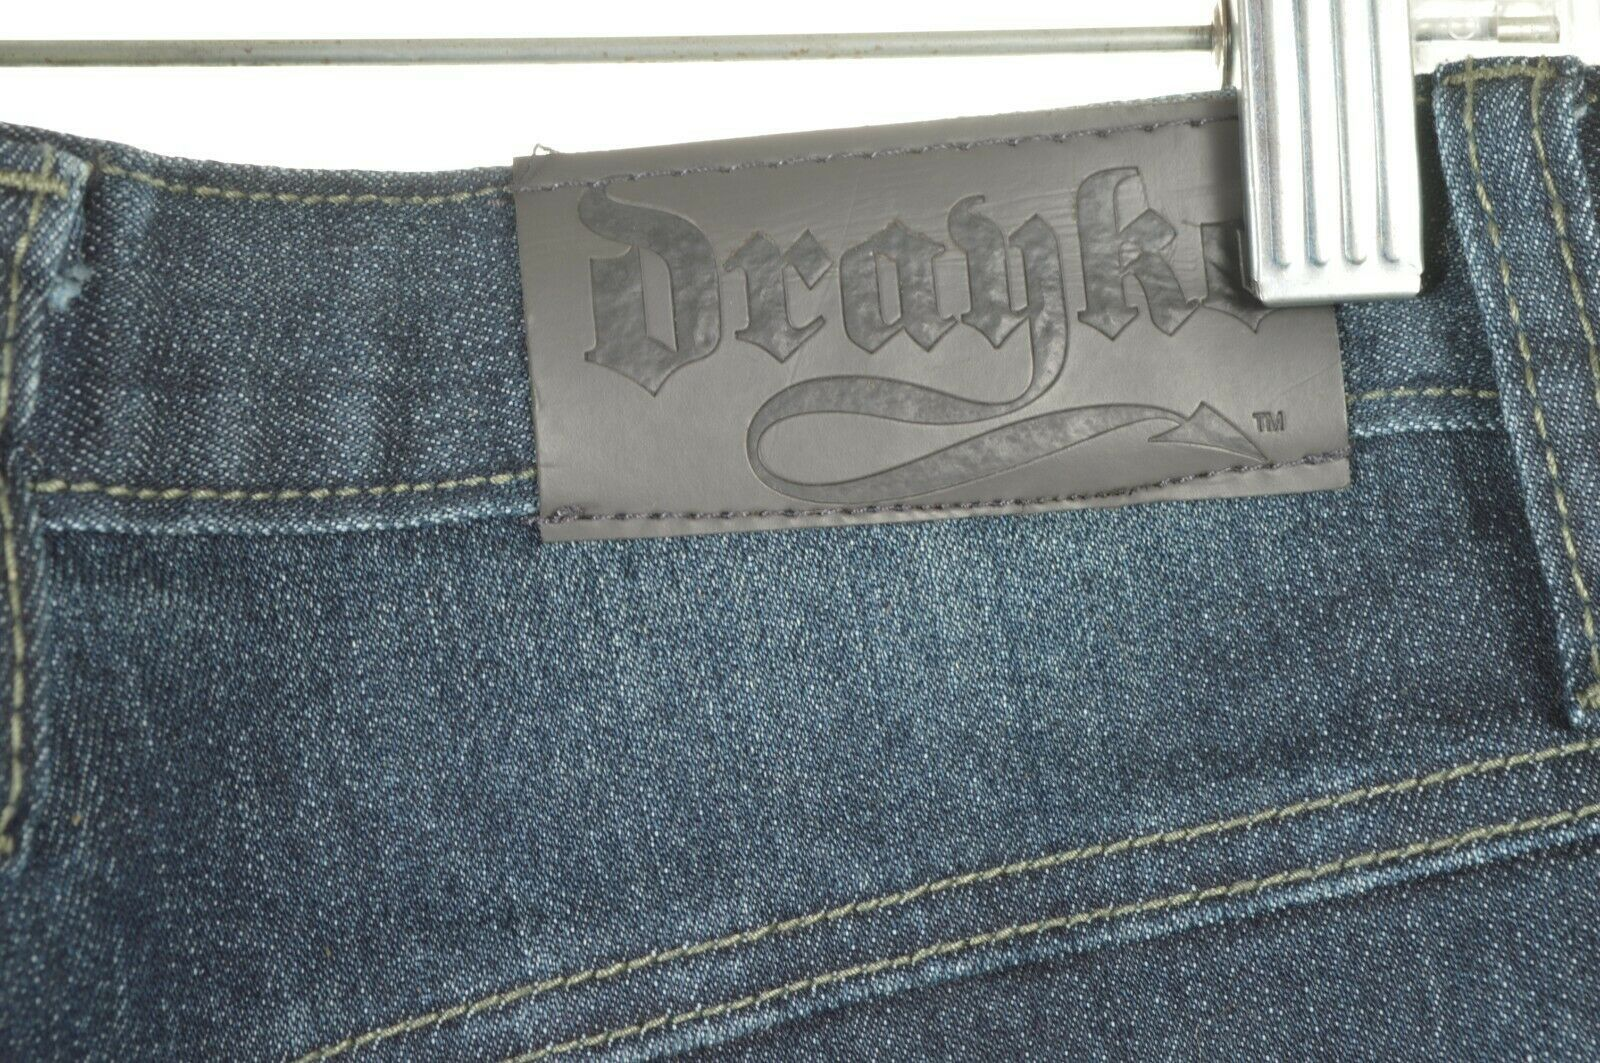 Drayko Jeans Mens 30 x 37 Motorcycle Riding extra long padded - Slightly Used image 5